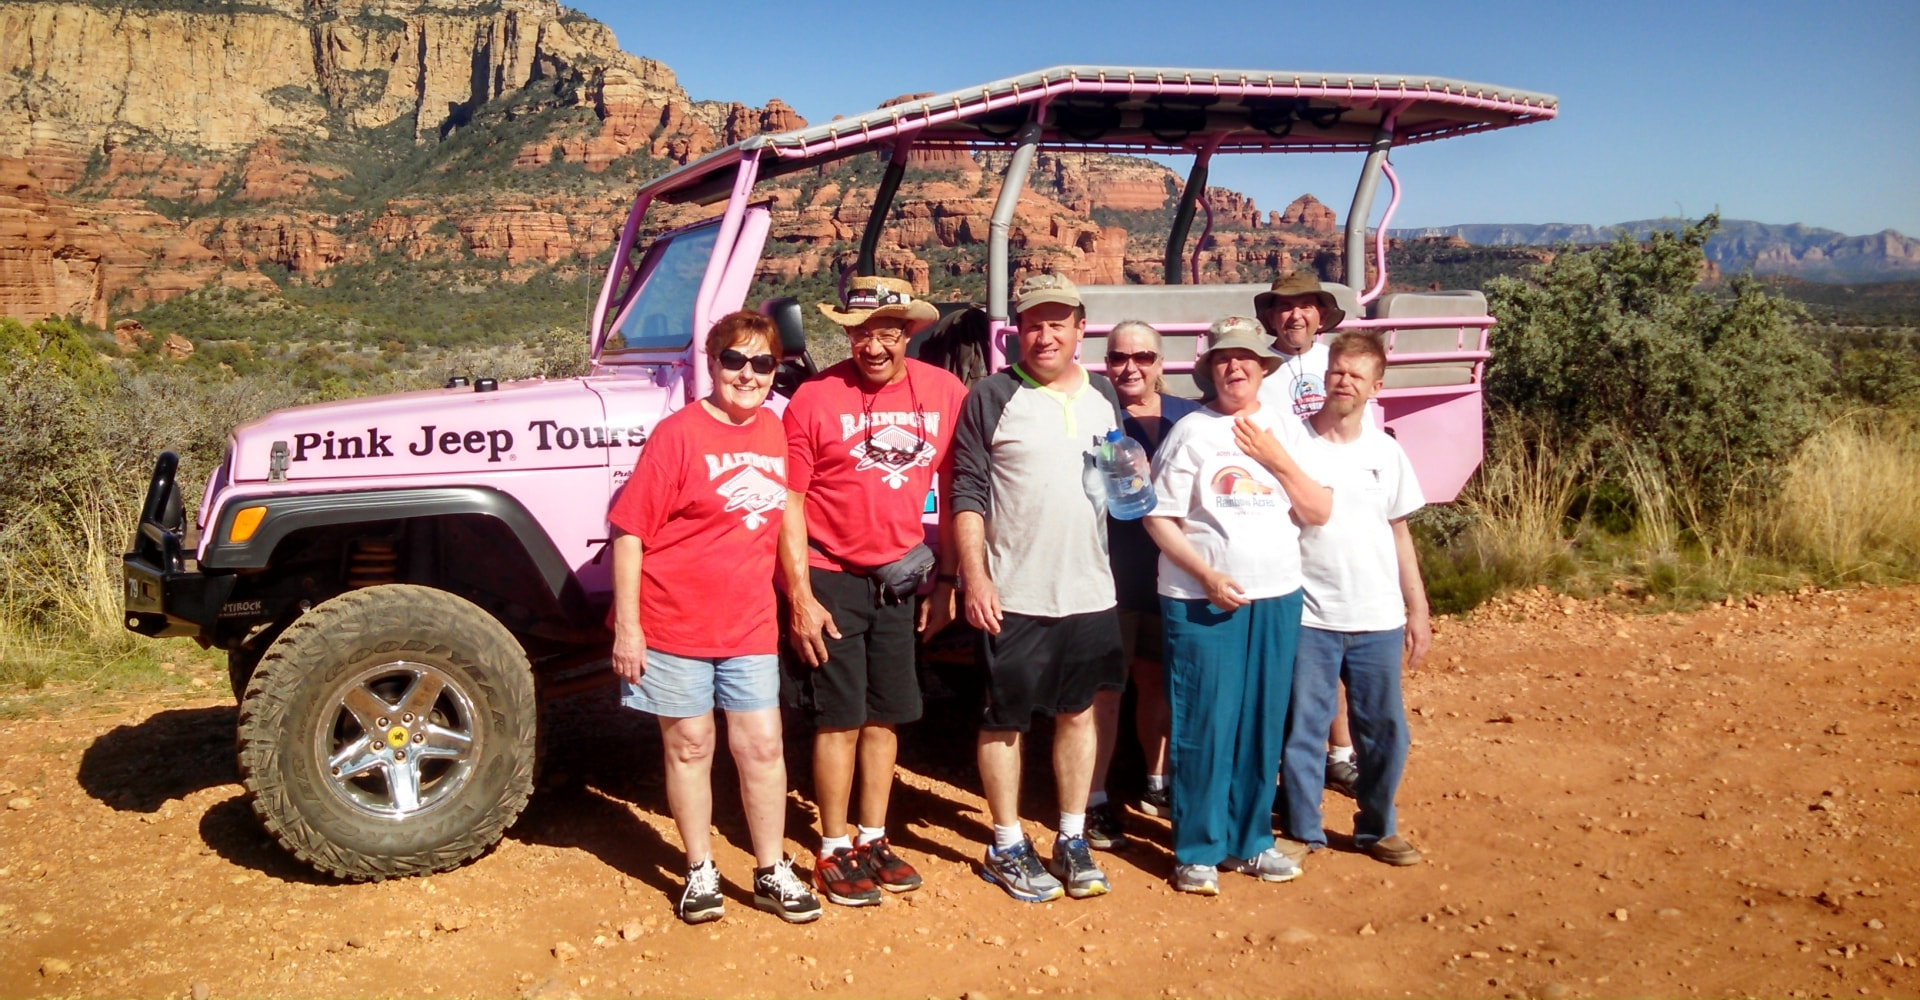 Group exploring desert red rocks with pink jeep